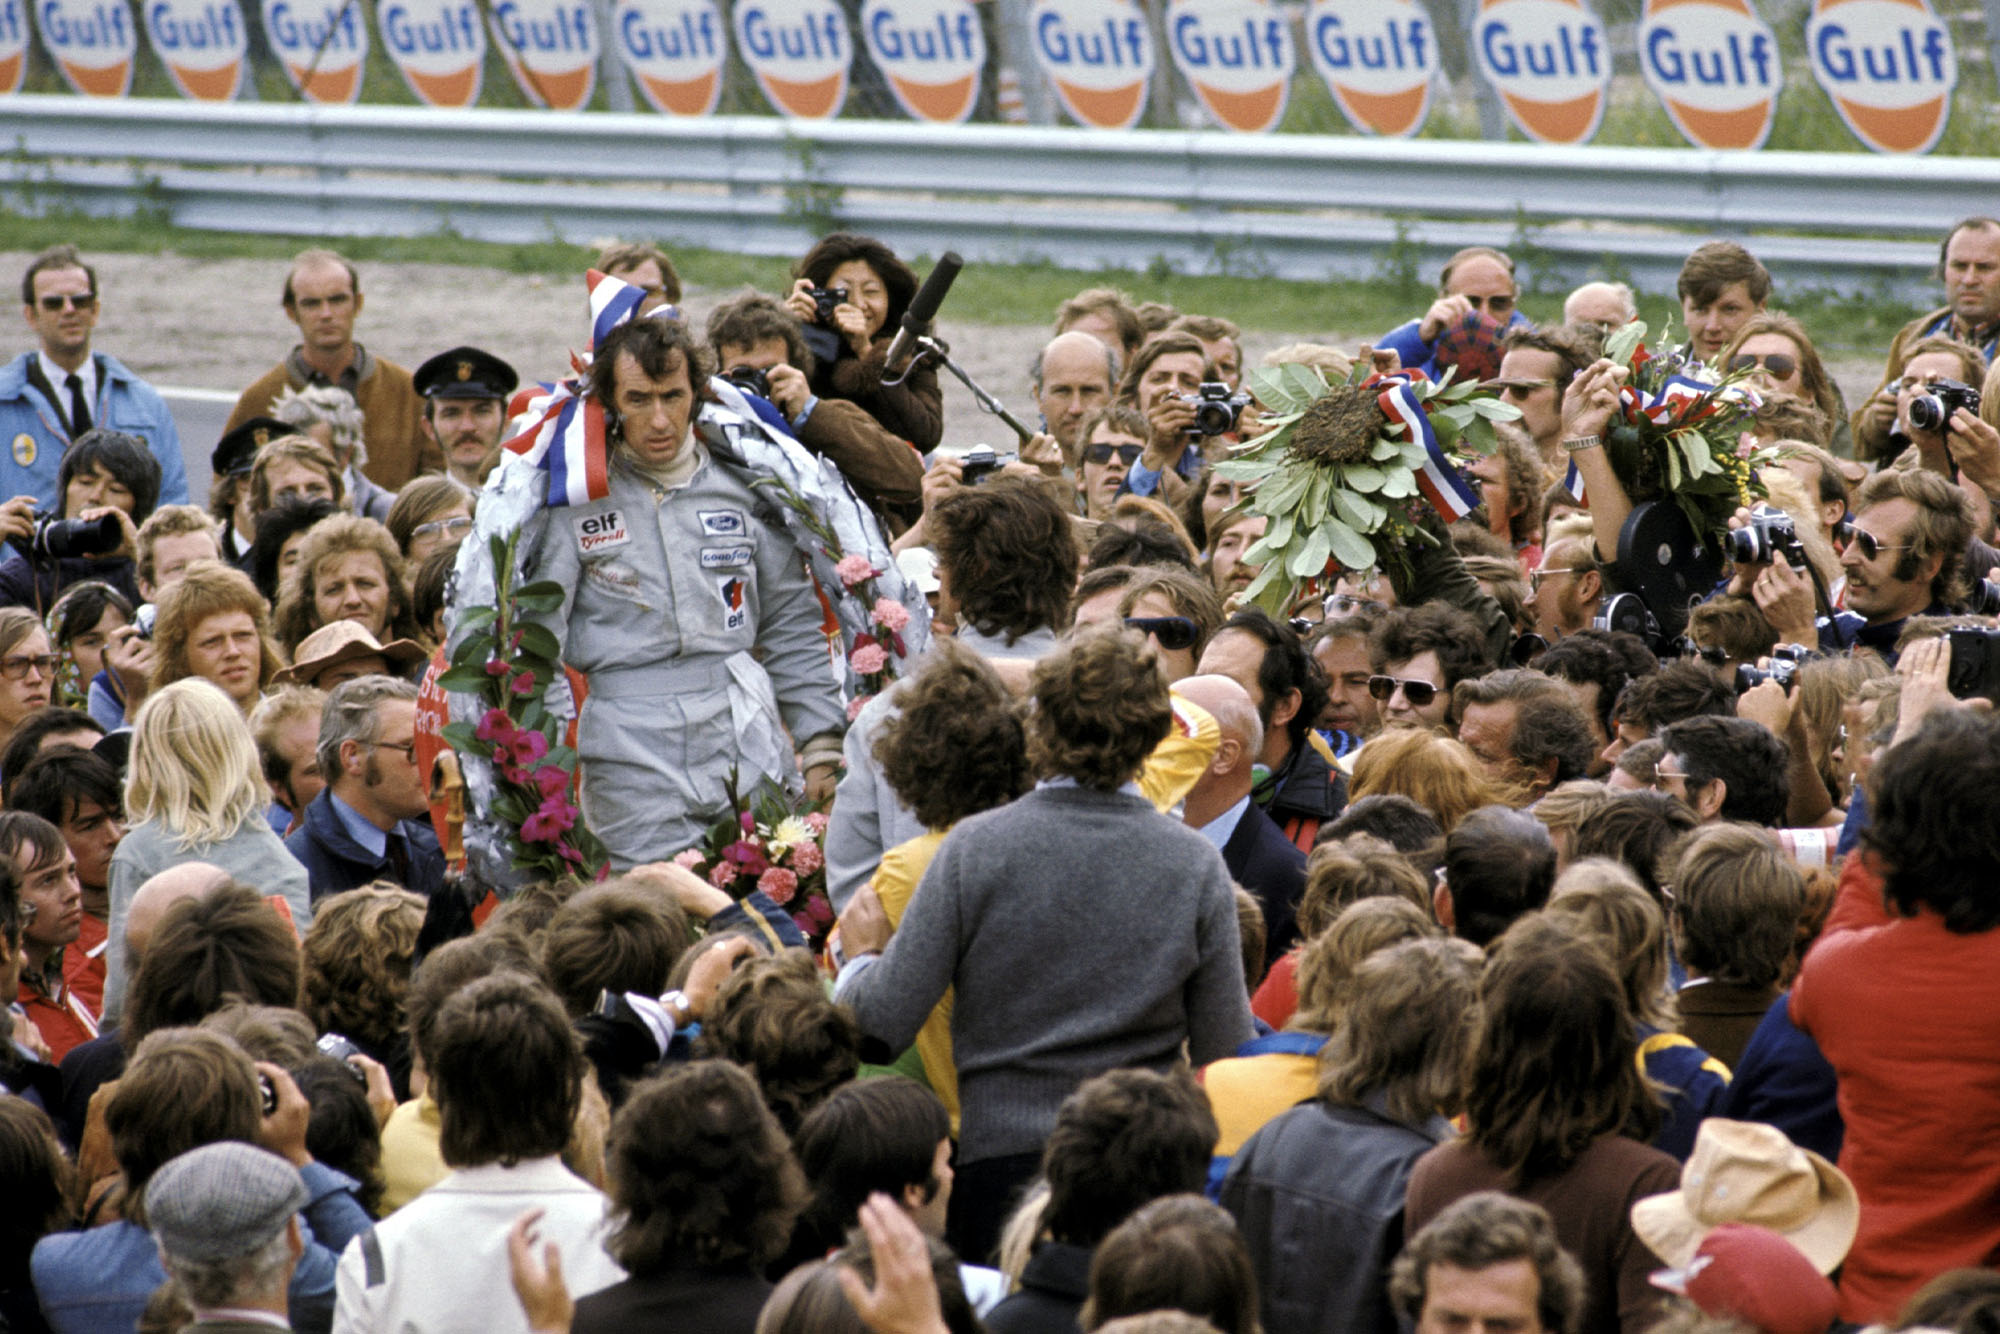 Jack Stewart stands on the podium after winning the 1973 Dutch Grand Prix, Zandvoort.